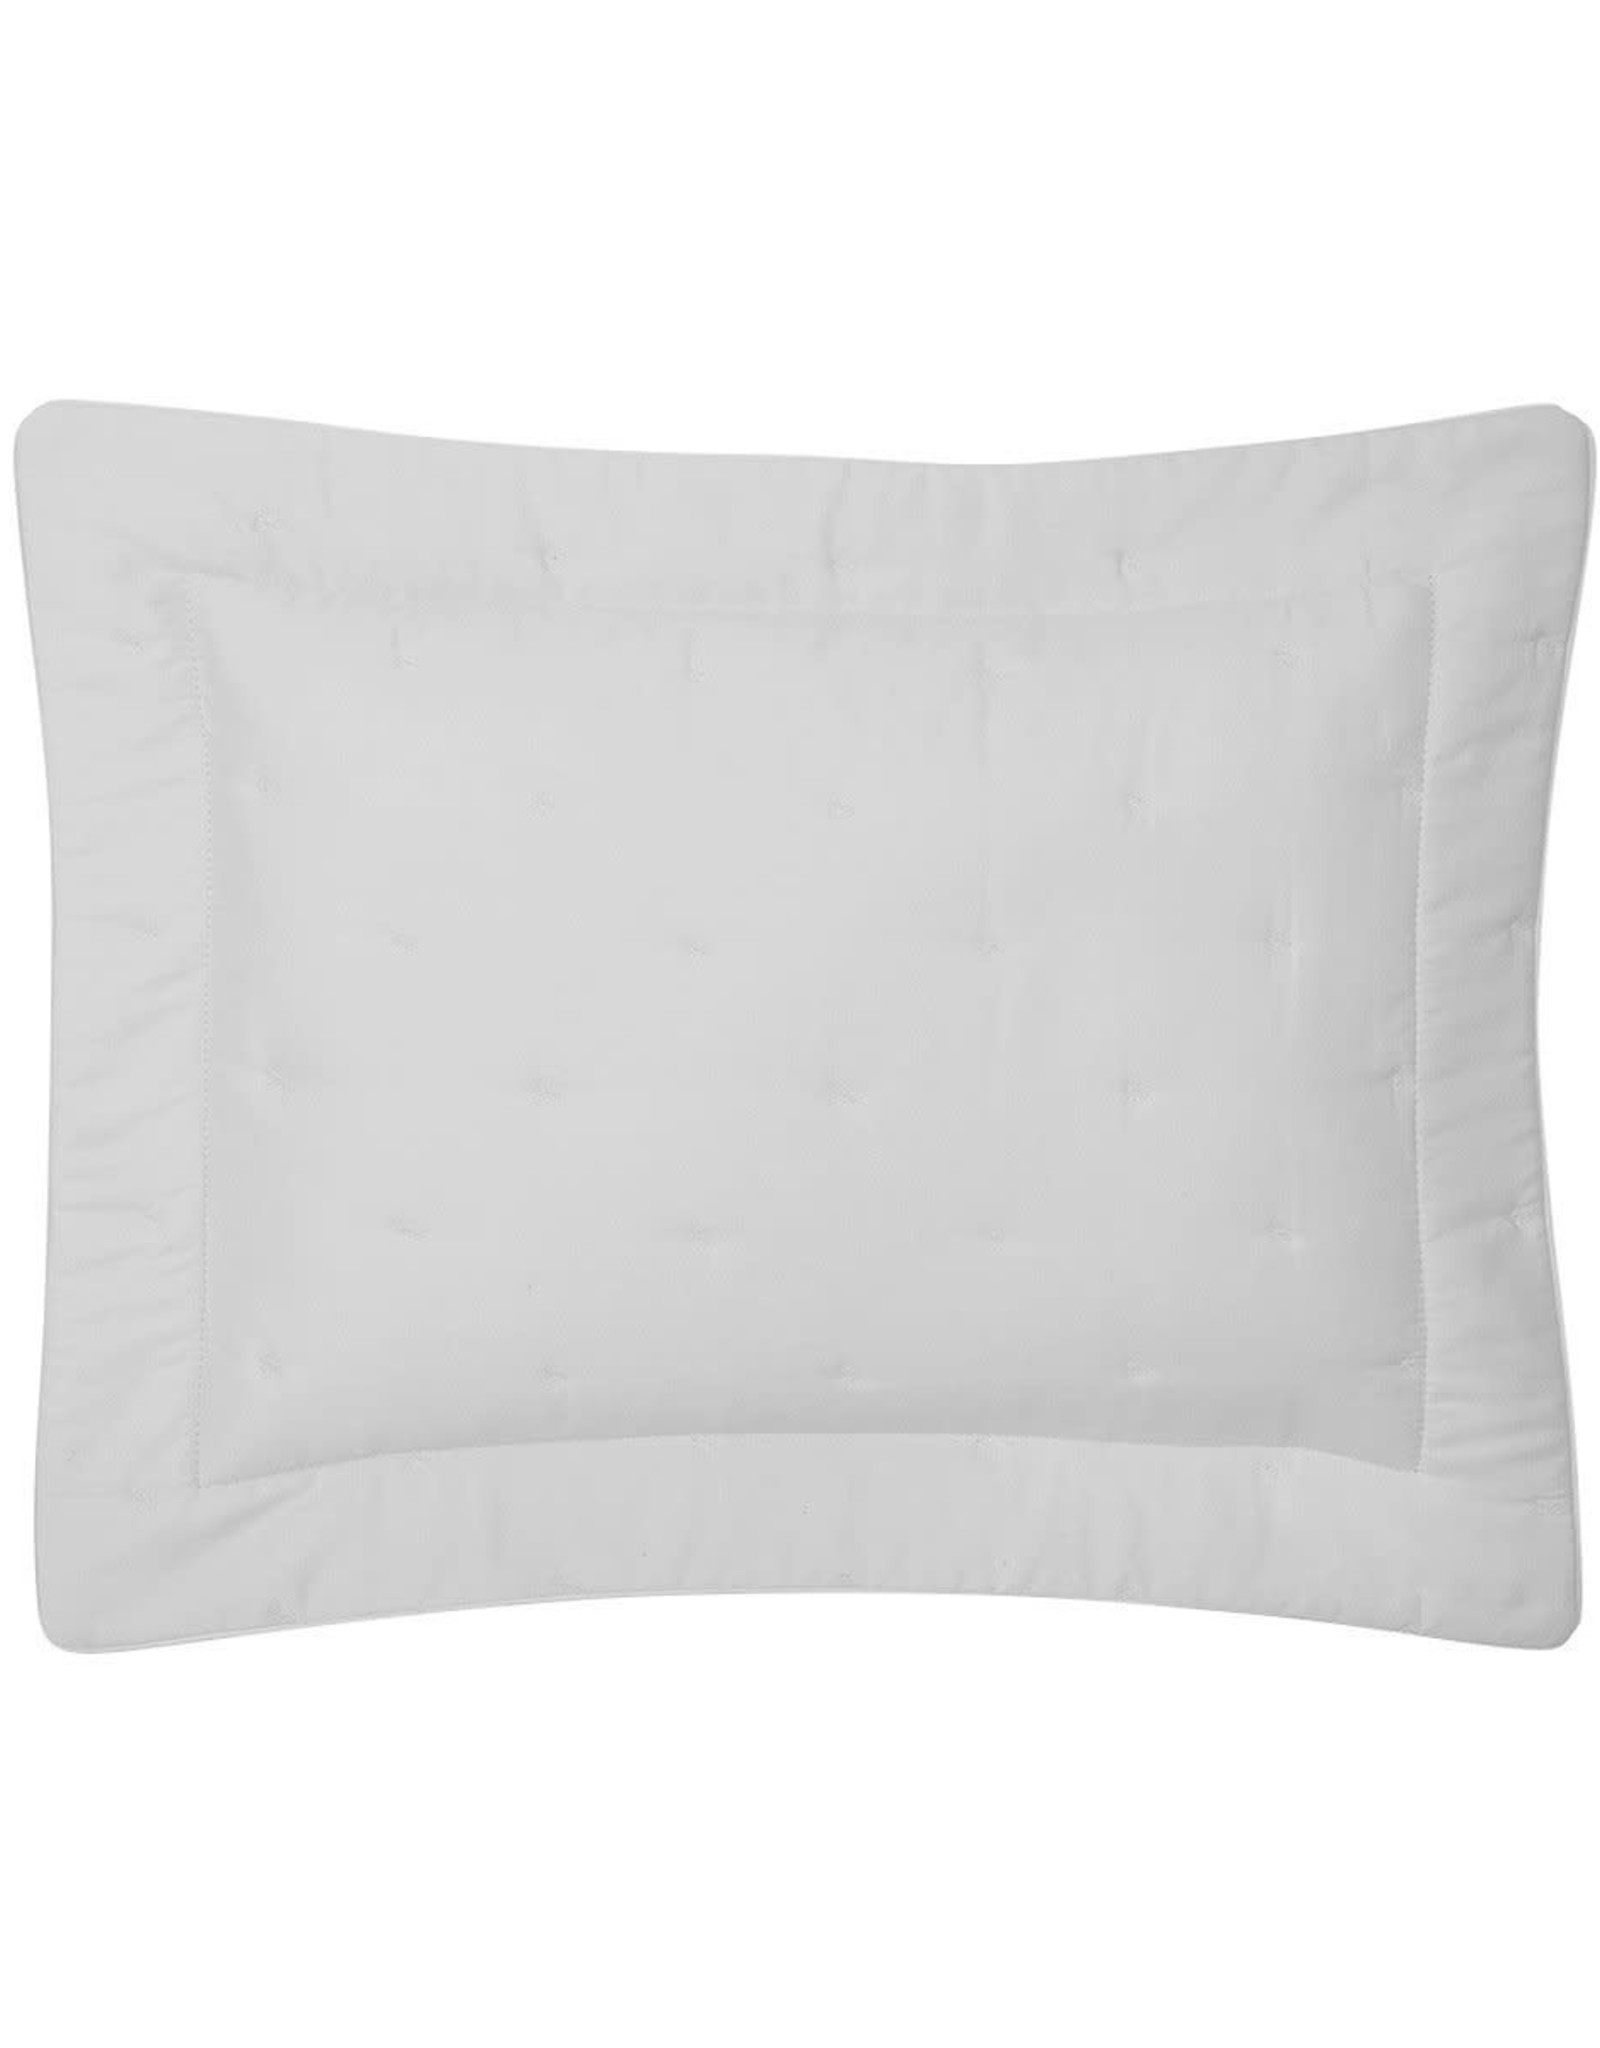 Yves Delorme Triomphe Quilted Shams